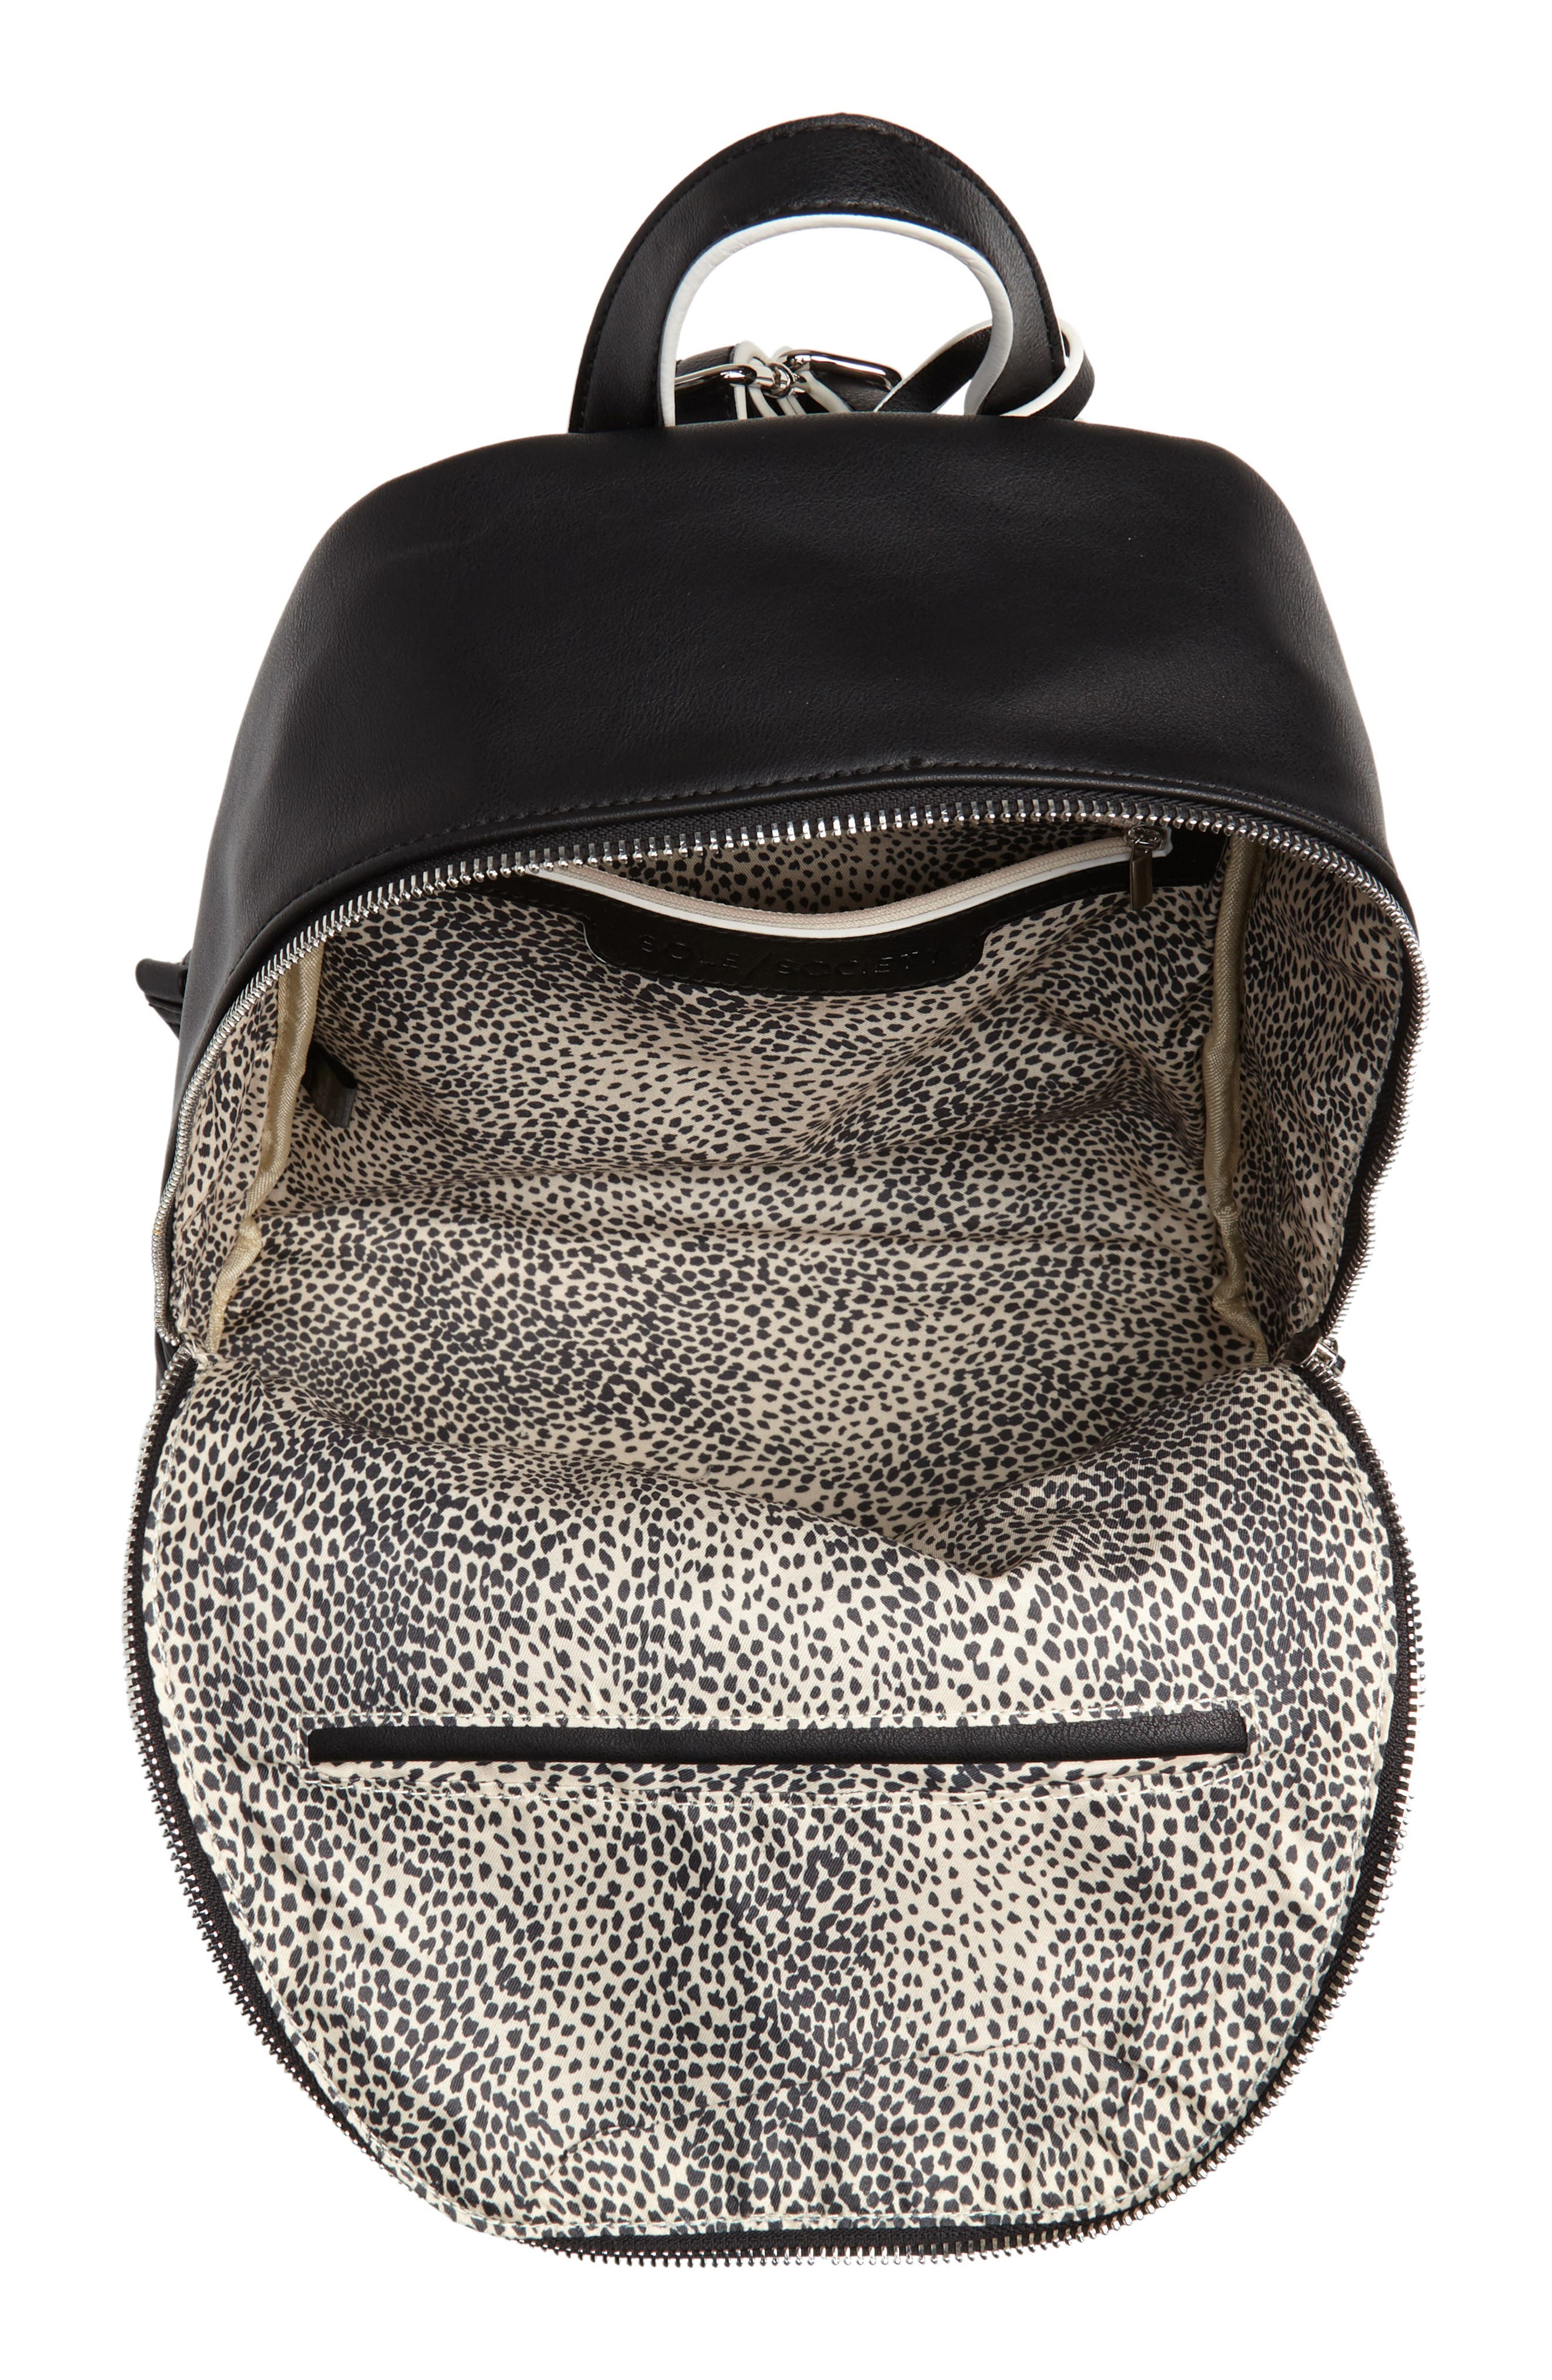 SOLE SOCIETY,                             Haili Faux Leather Backpack,                             Alternate thumbnail 4, color,                             001